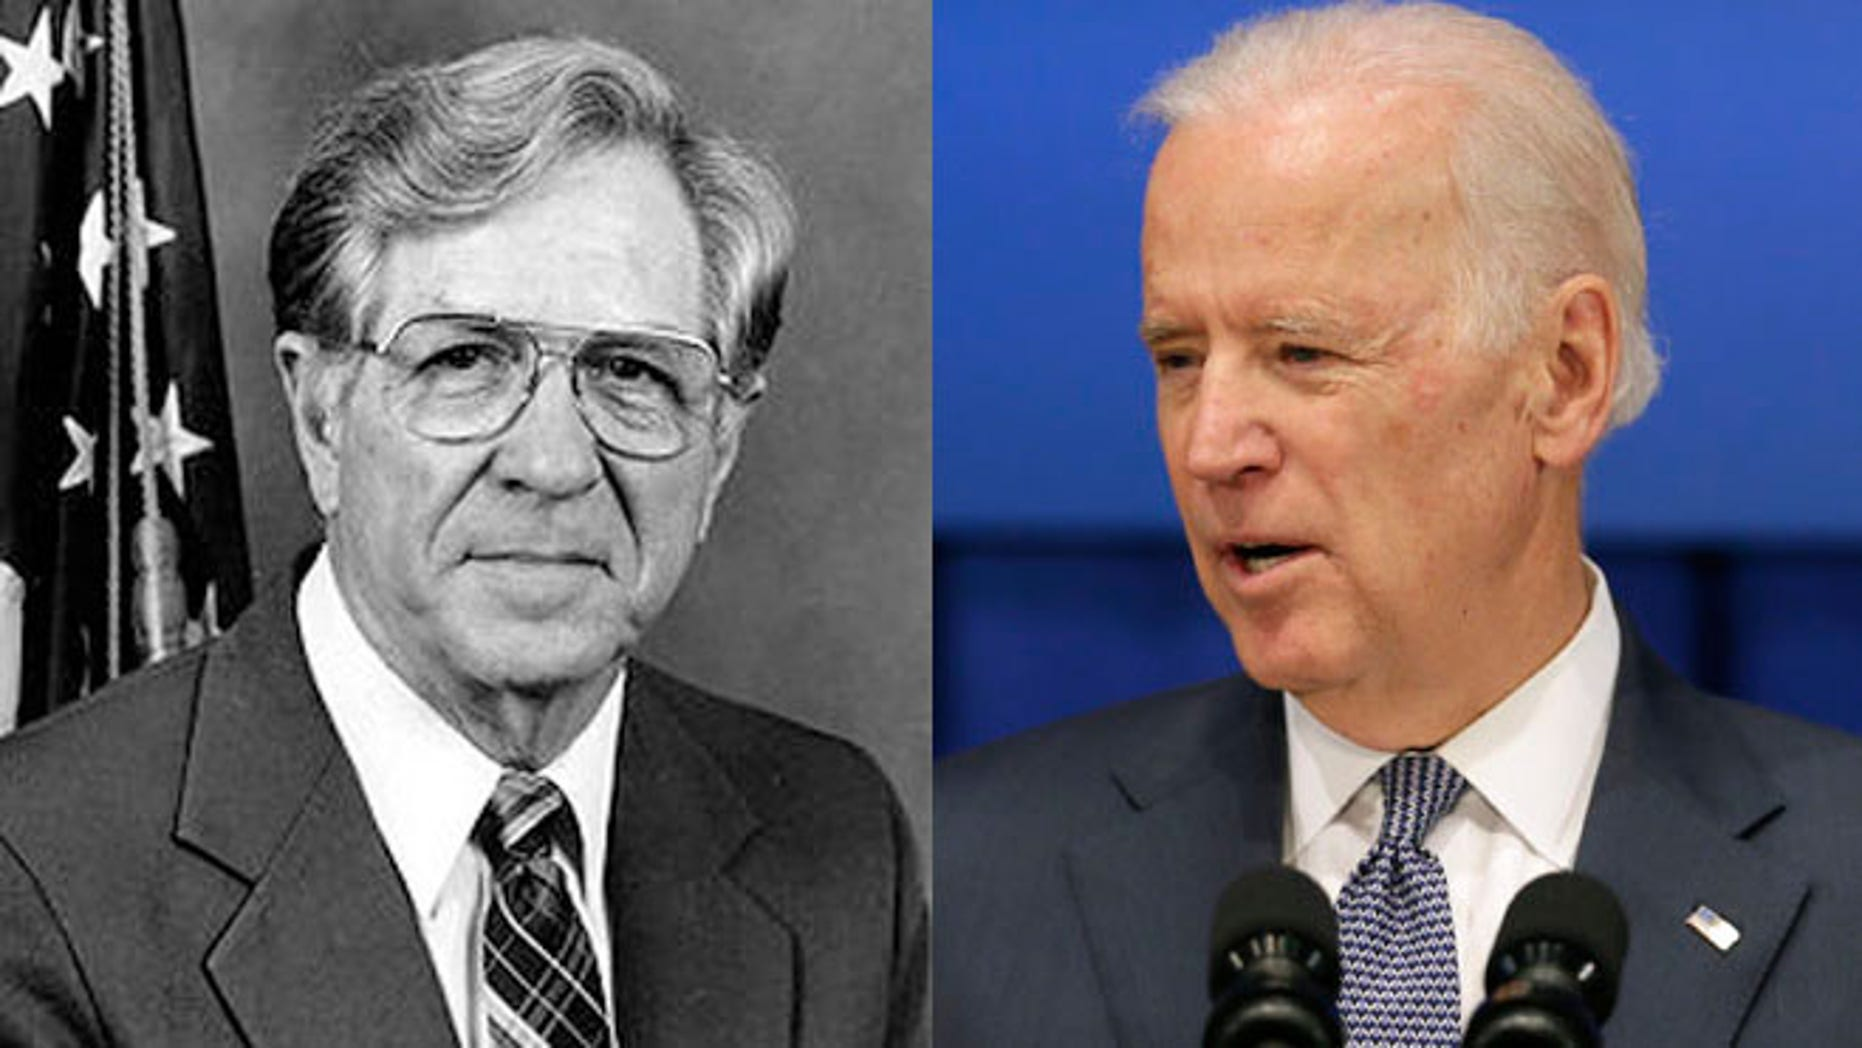 Neal Smith (left), 94-year-old former Iowa lawmaker and Vice President Joe Biden (right).